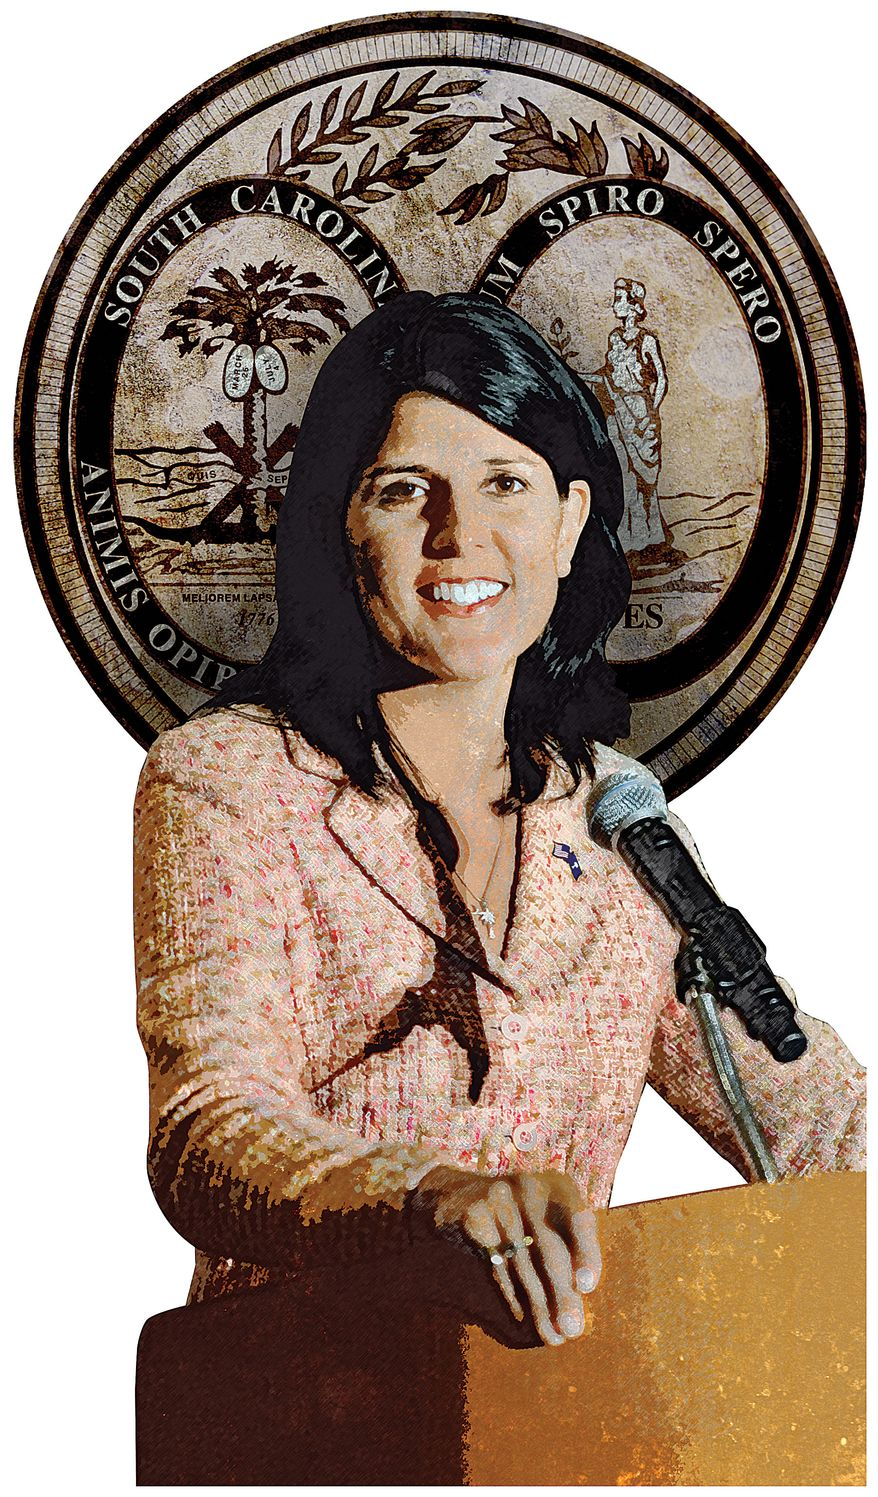 Illustration Nikki Haley by Greg Groesch for The Washington Times